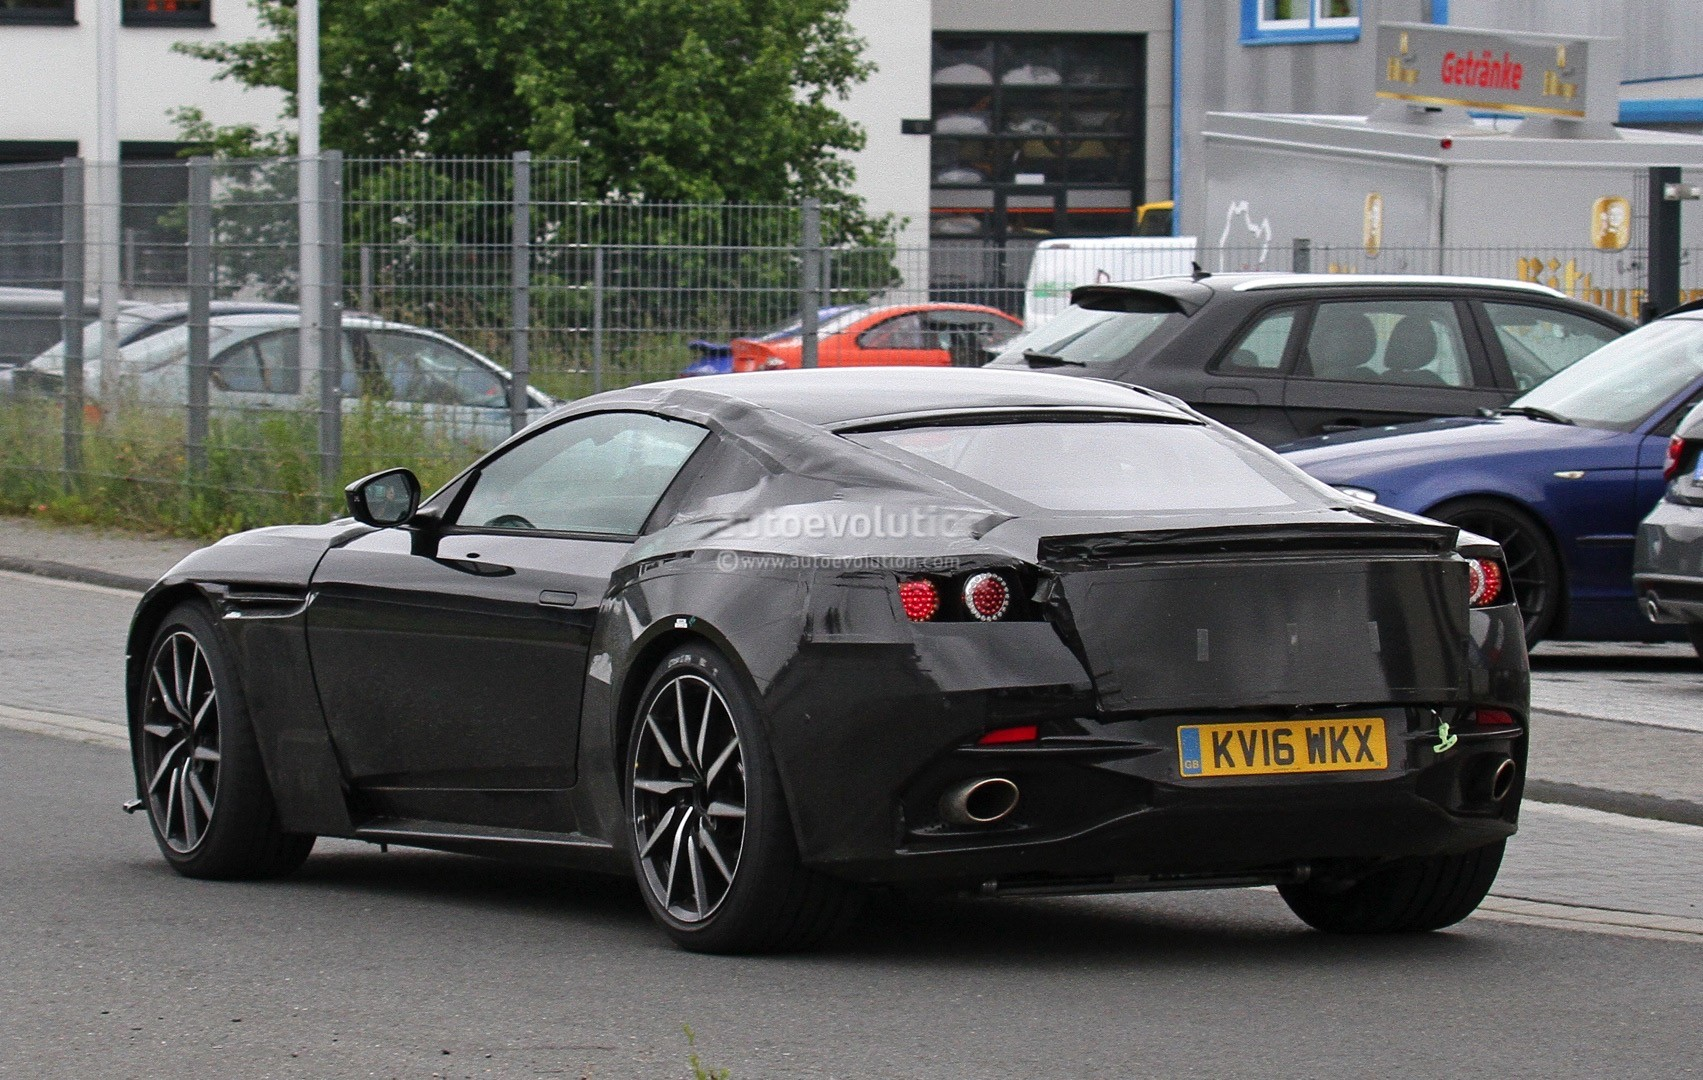 Aston Martin V Vantage Spied Has Mercedes Amg M Twin Turbo V on Aston Martin V12 Vantage S Revealed